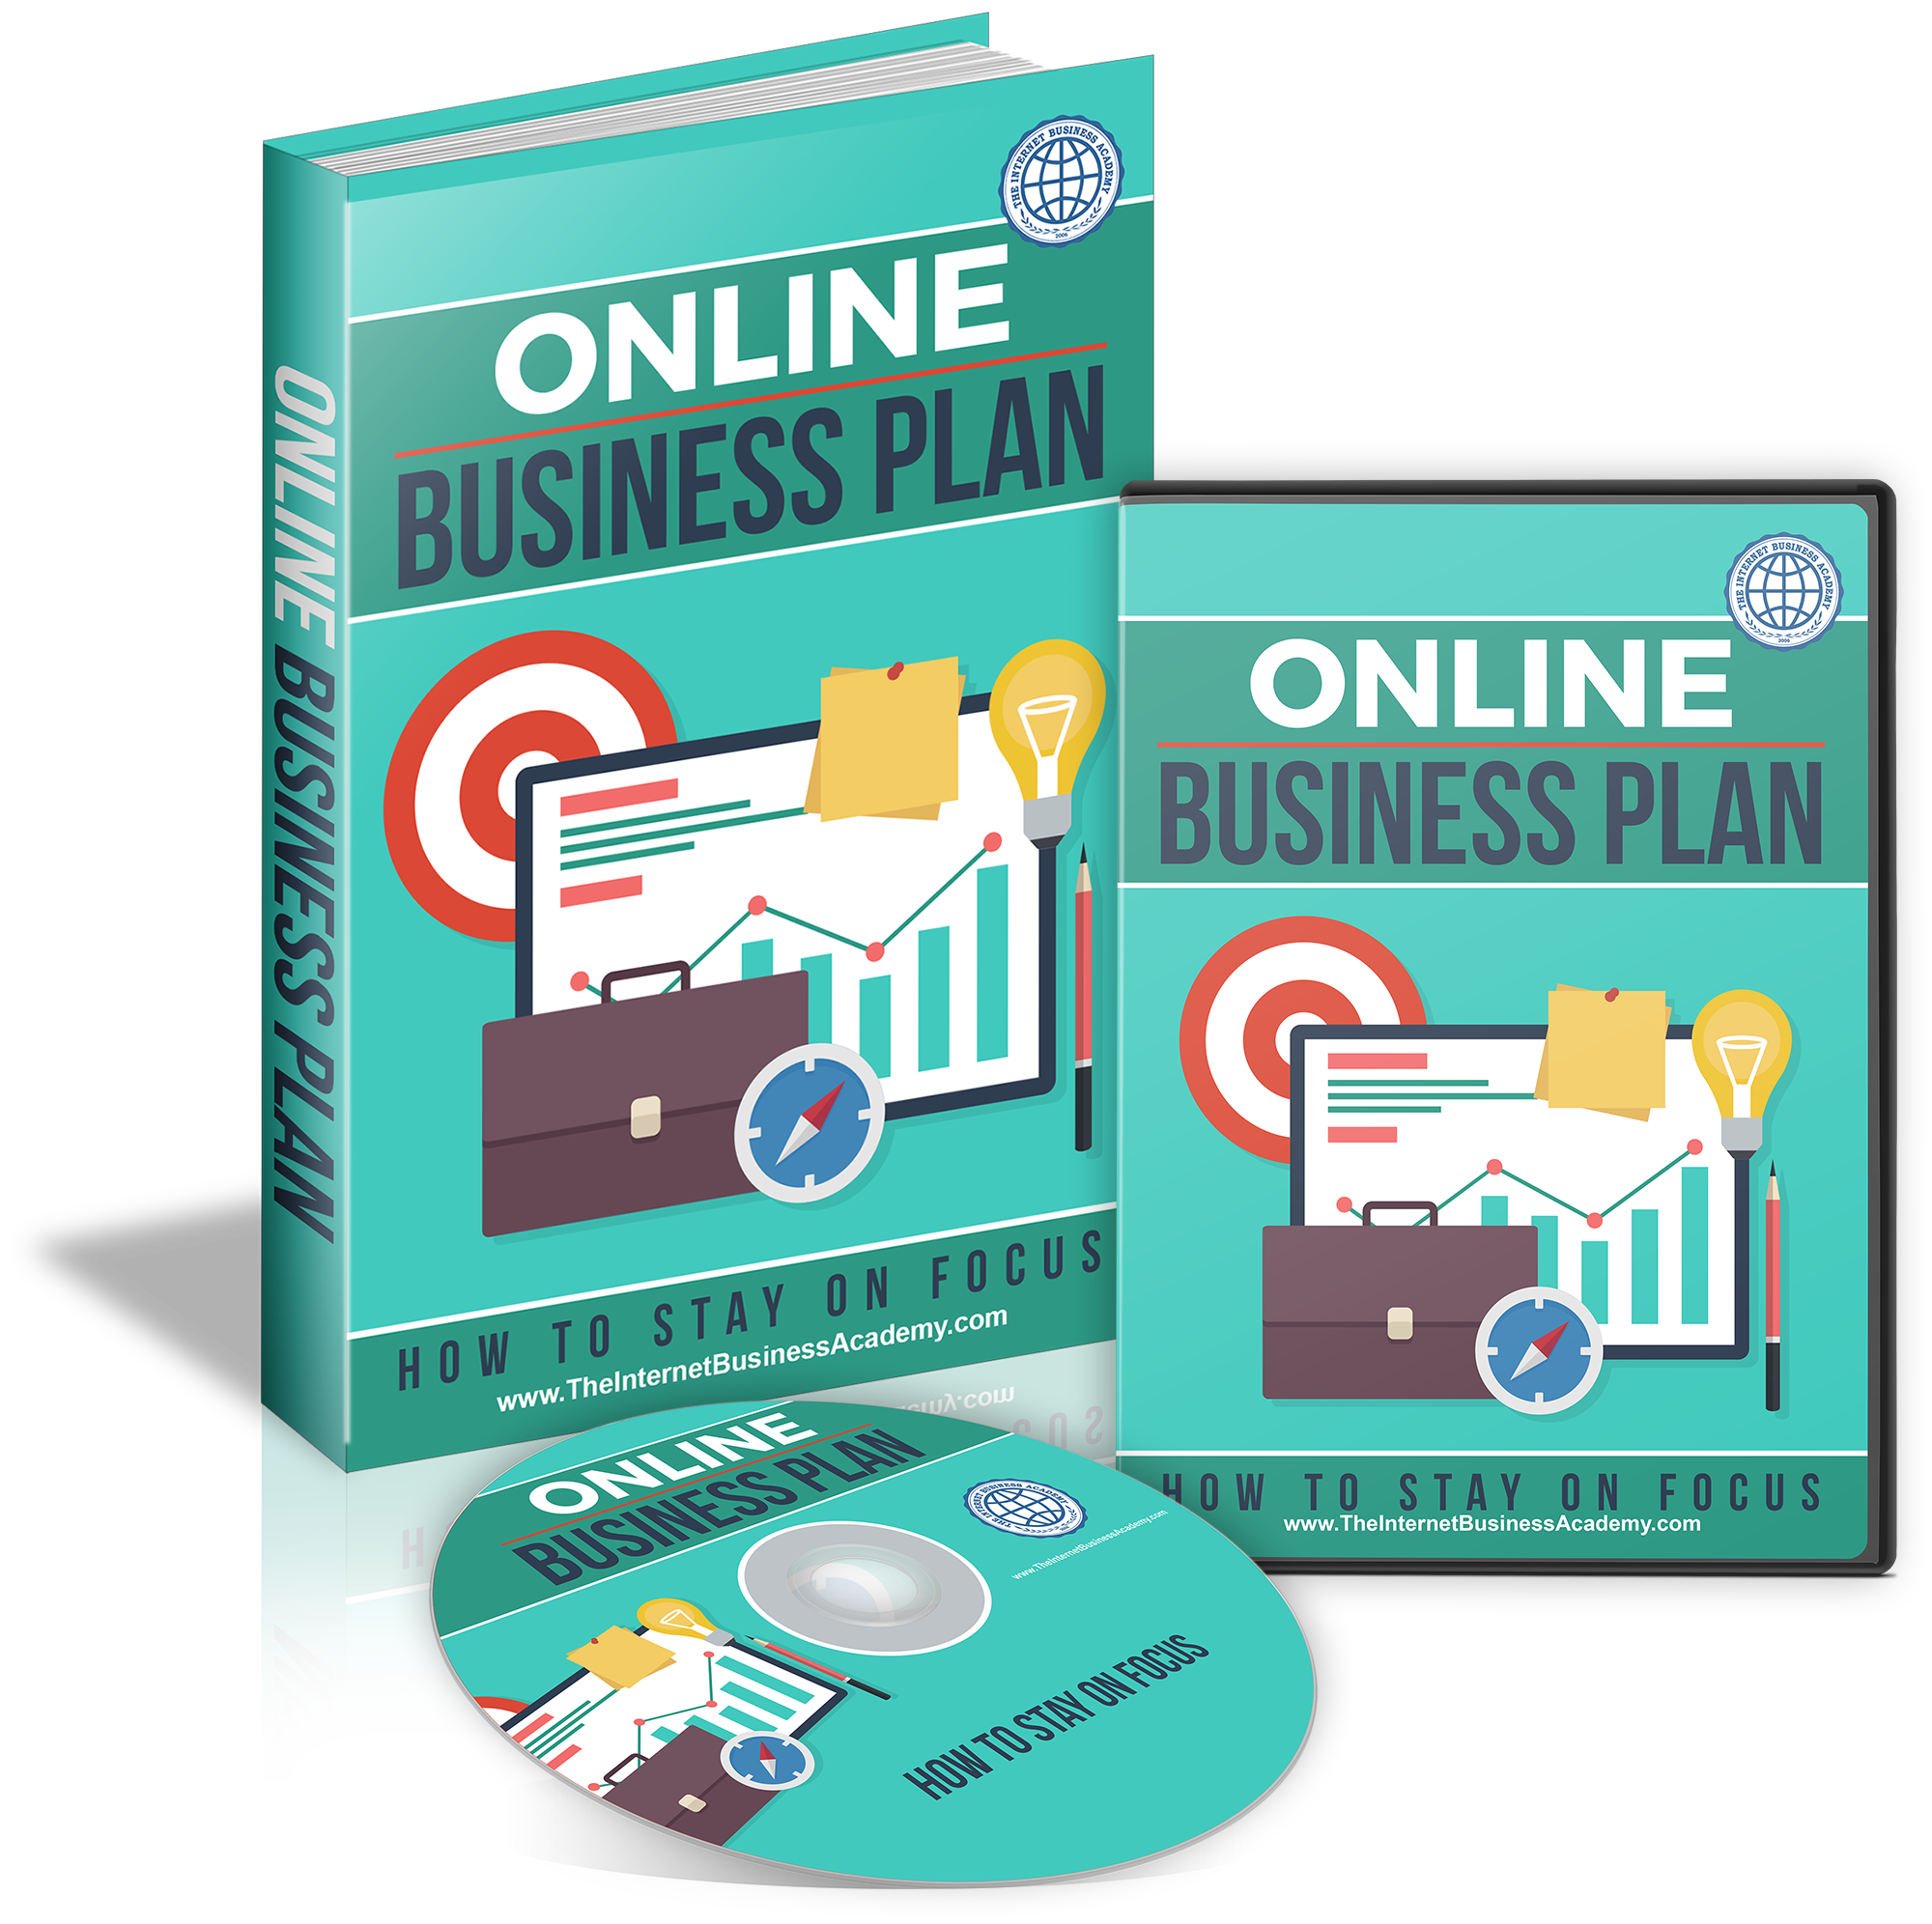 OnlineBusinessPlanvideo